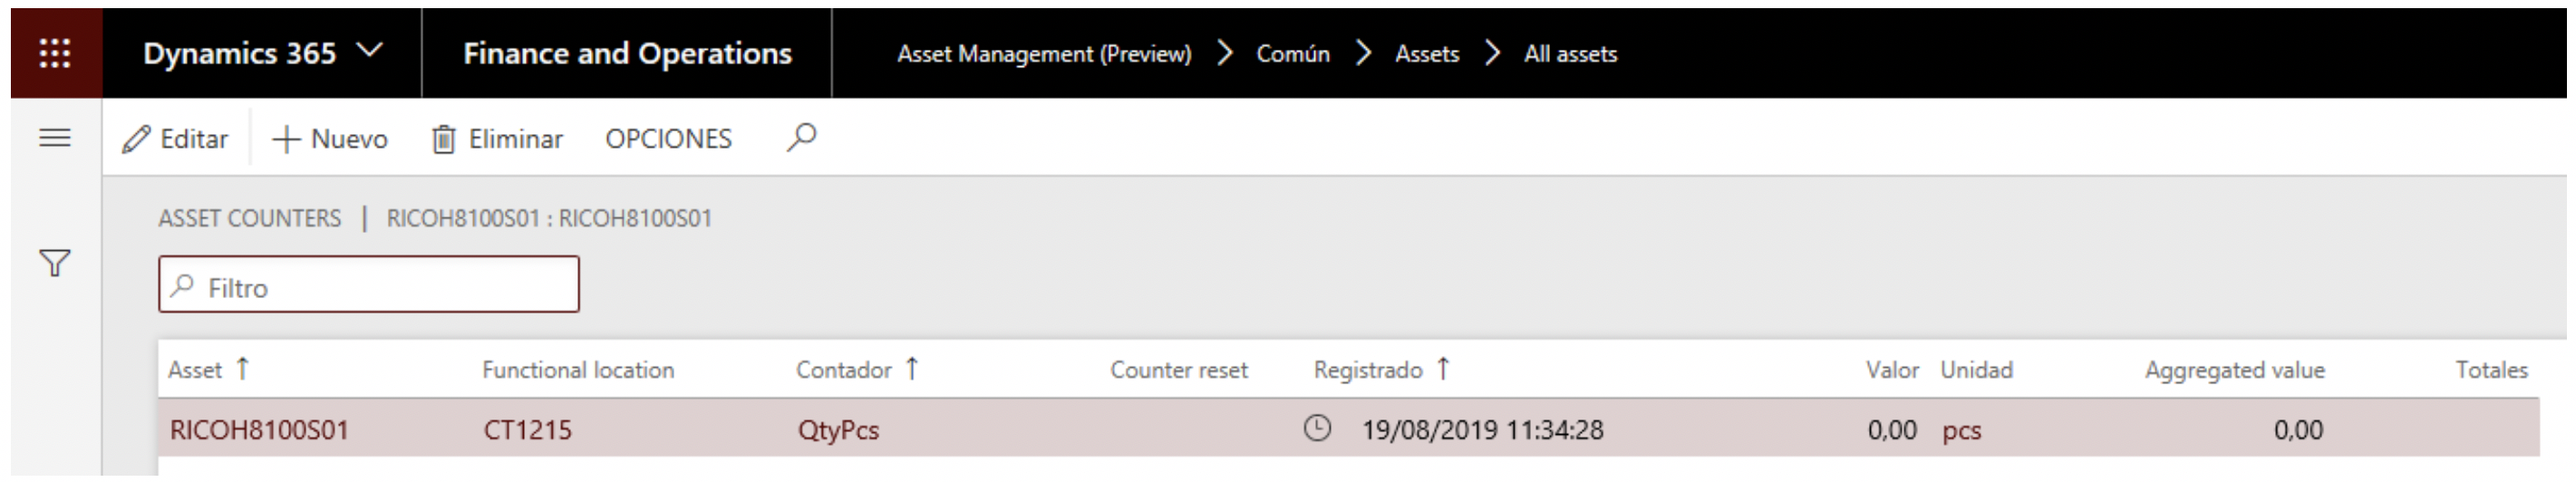 ERD - Dynamics365 Finance Operations - Gestión Activos ERP - 2.4